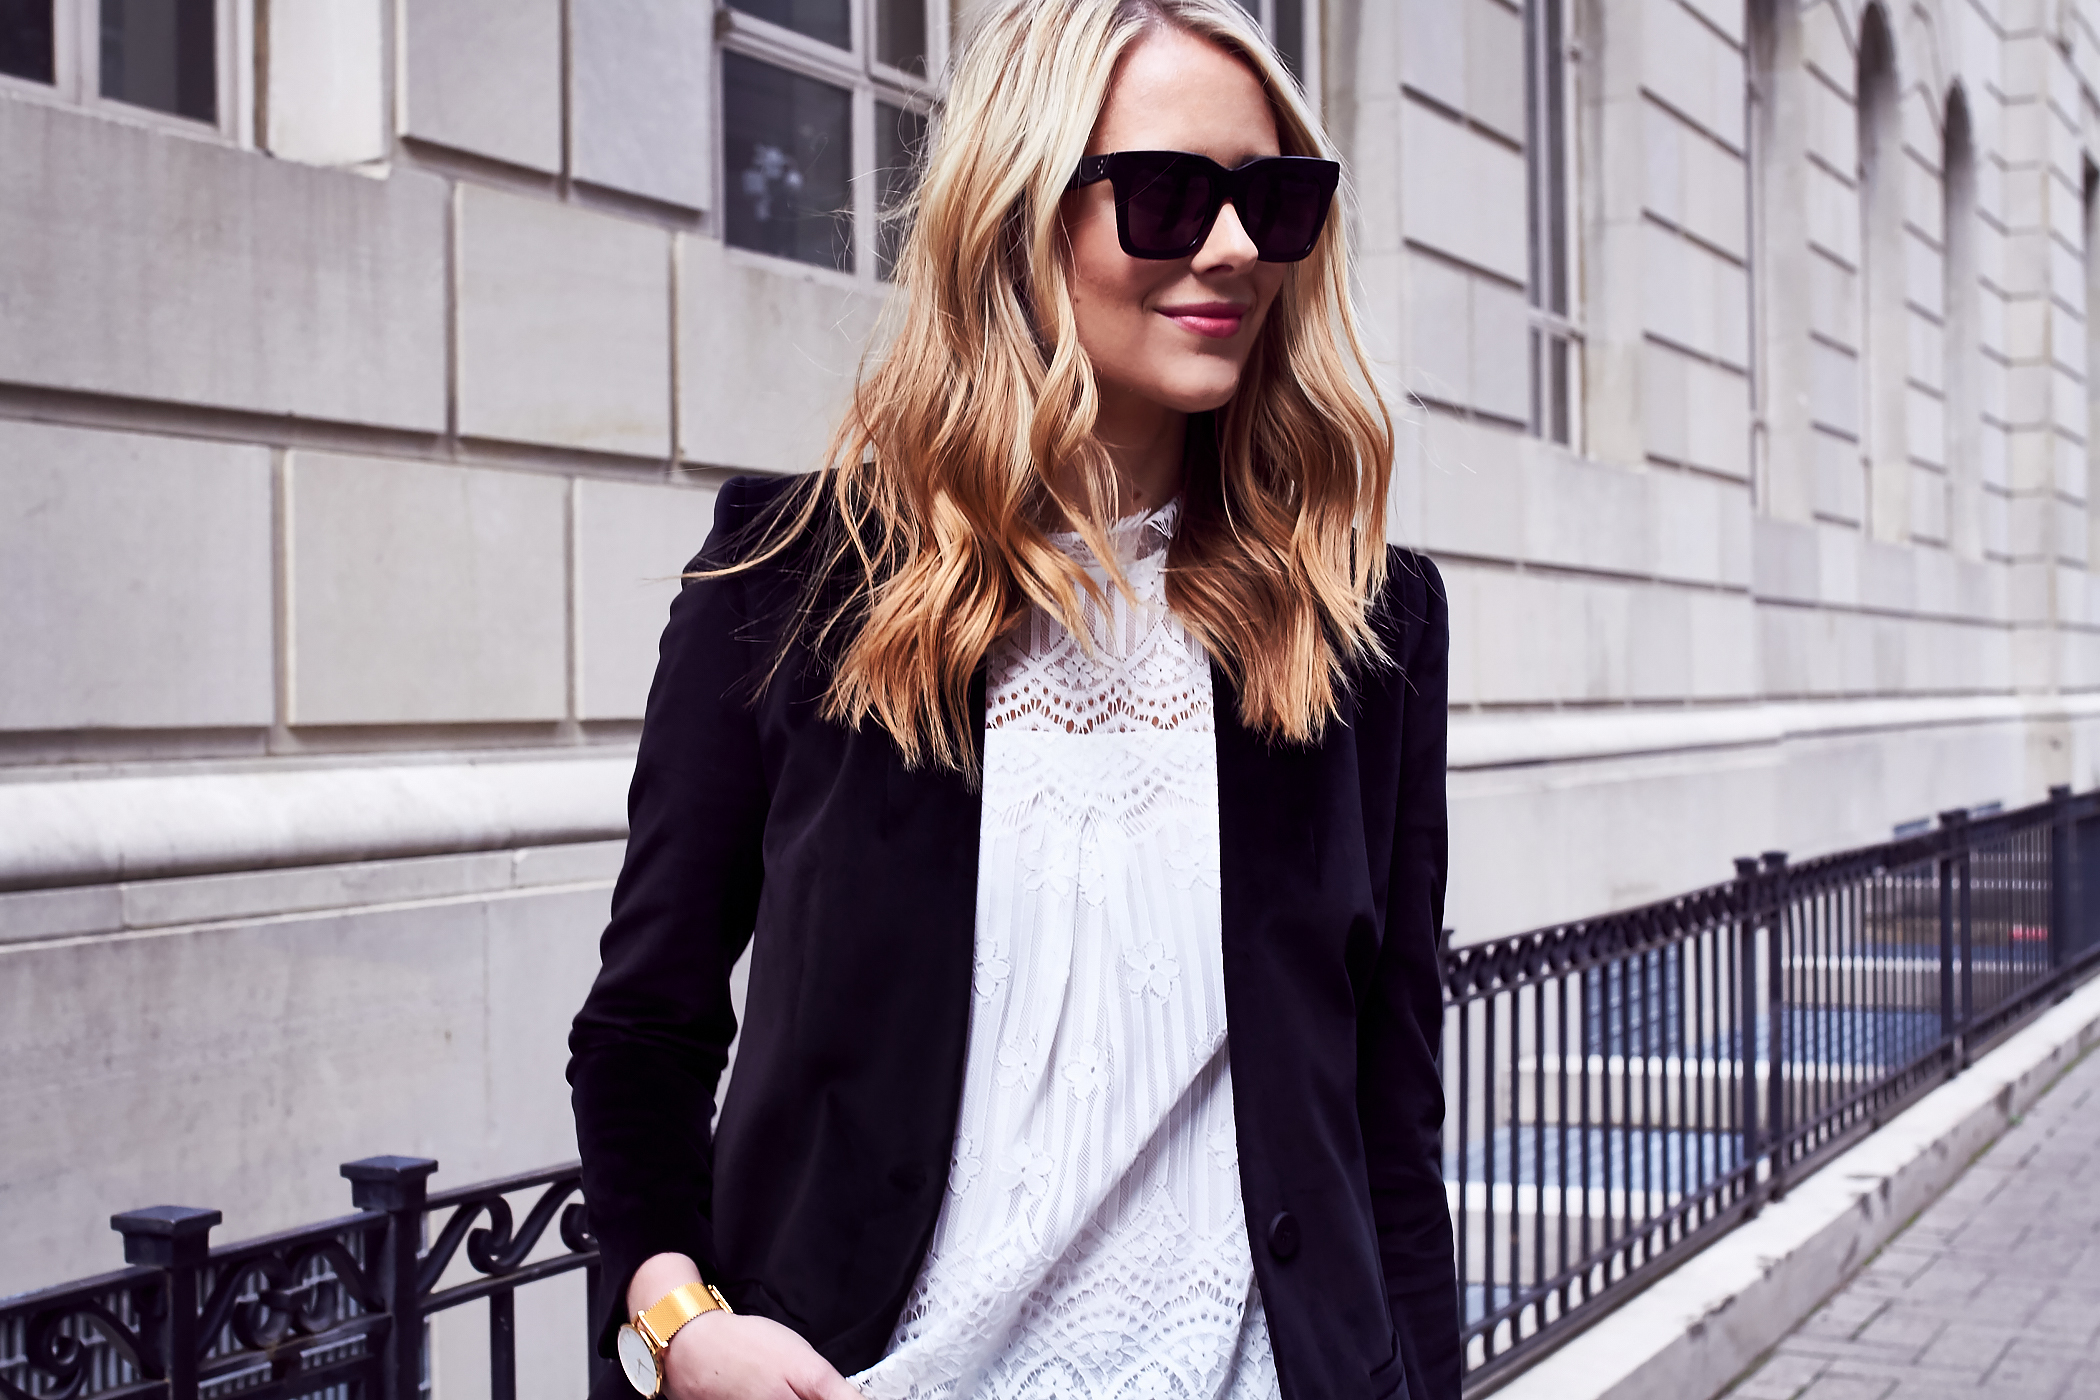 Fall Outfit, Holiday Outfit, White Lace Top, Black Velvet Blazer, Black Celine Sunglasses